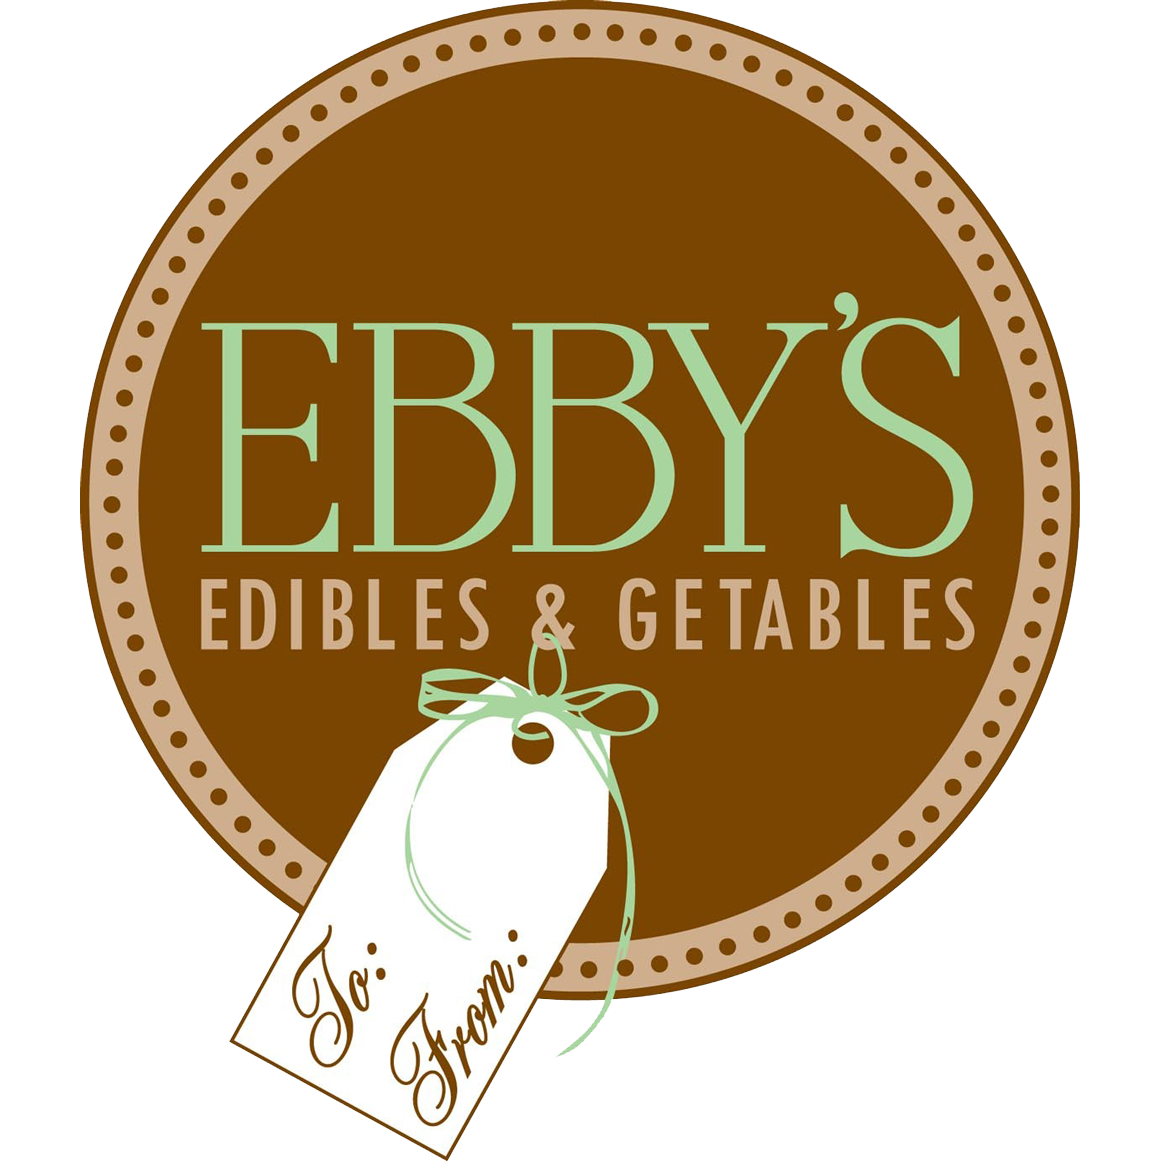 Ebby's Edibles & Getables